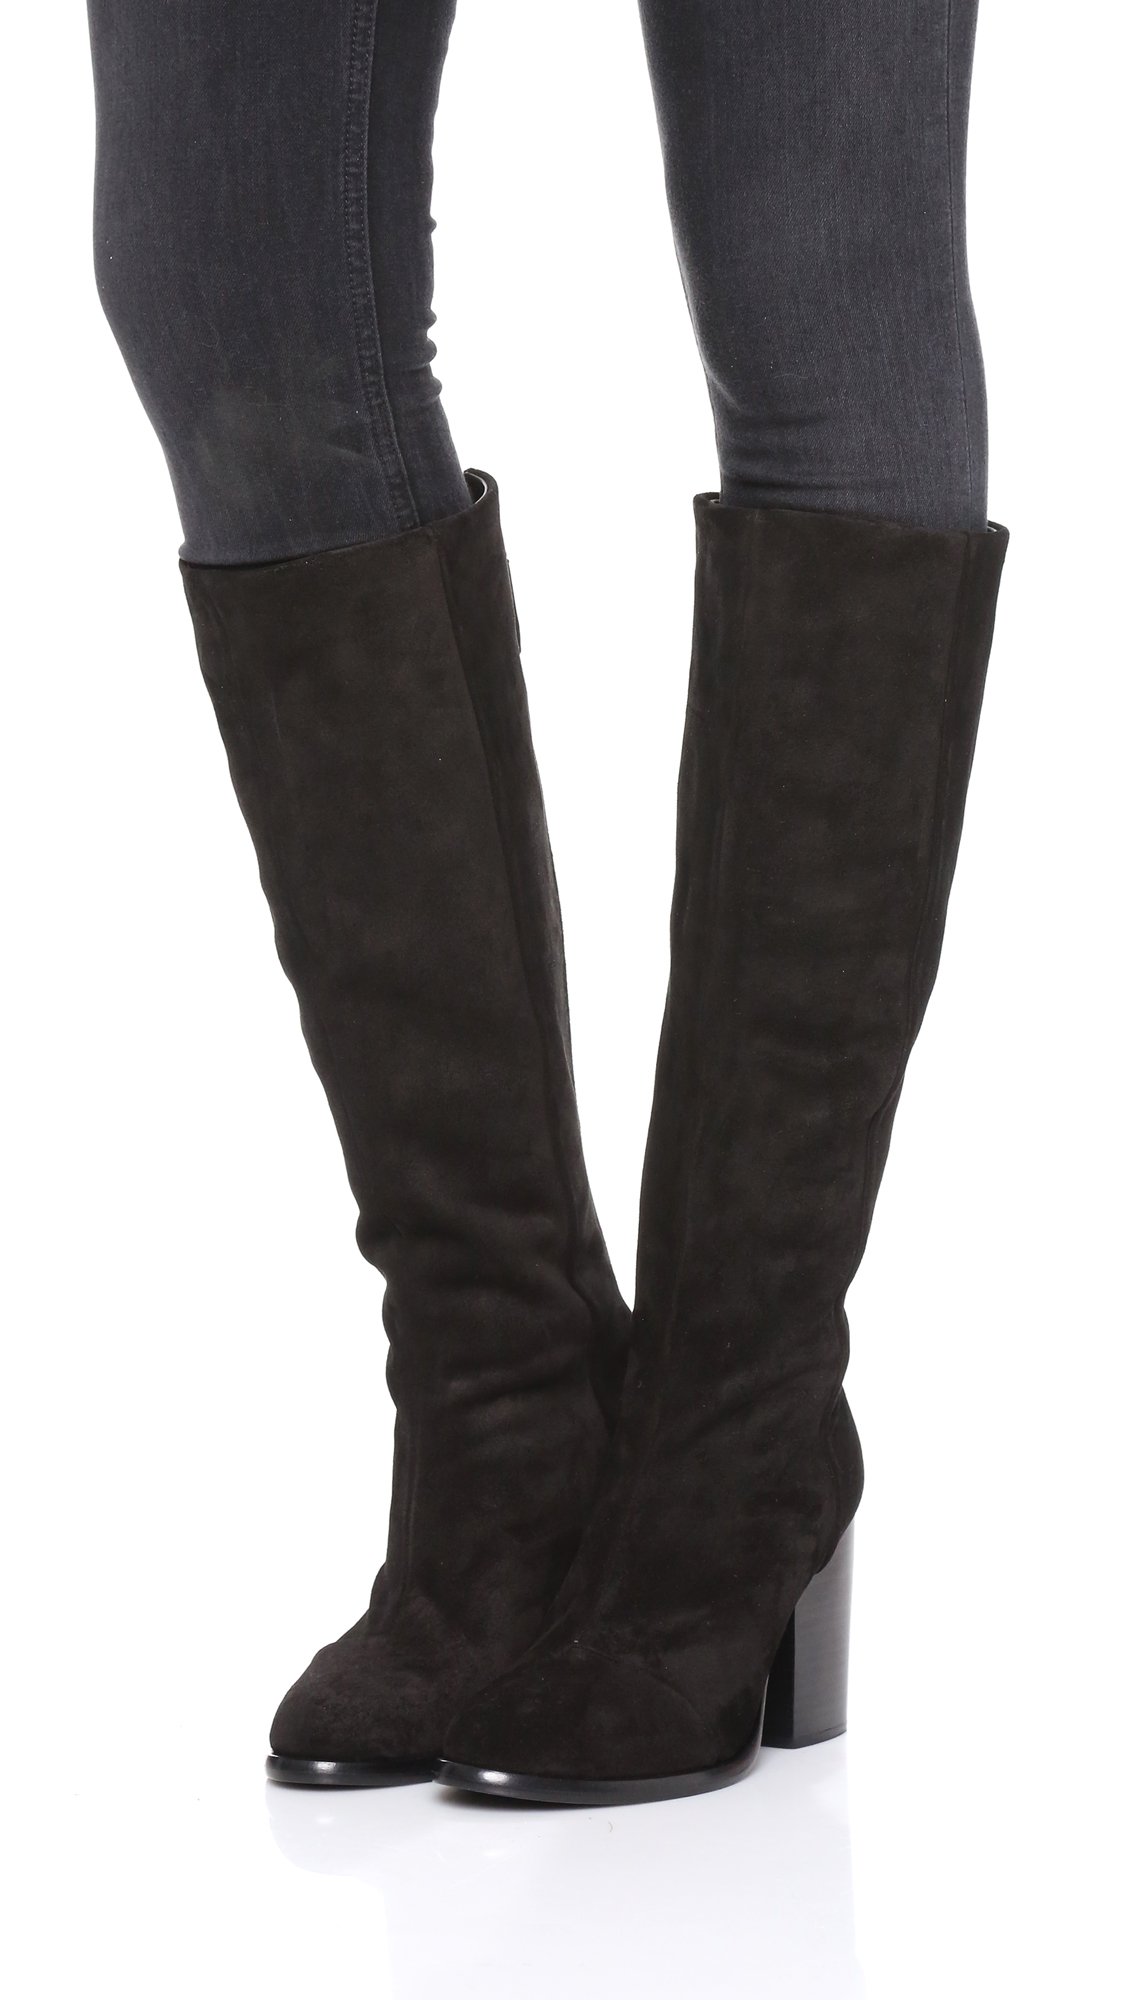 Rag & Bone Suede Knee-High Boots clearance choice buy cheap Manchester free shipping hot sale 1vH6BjC